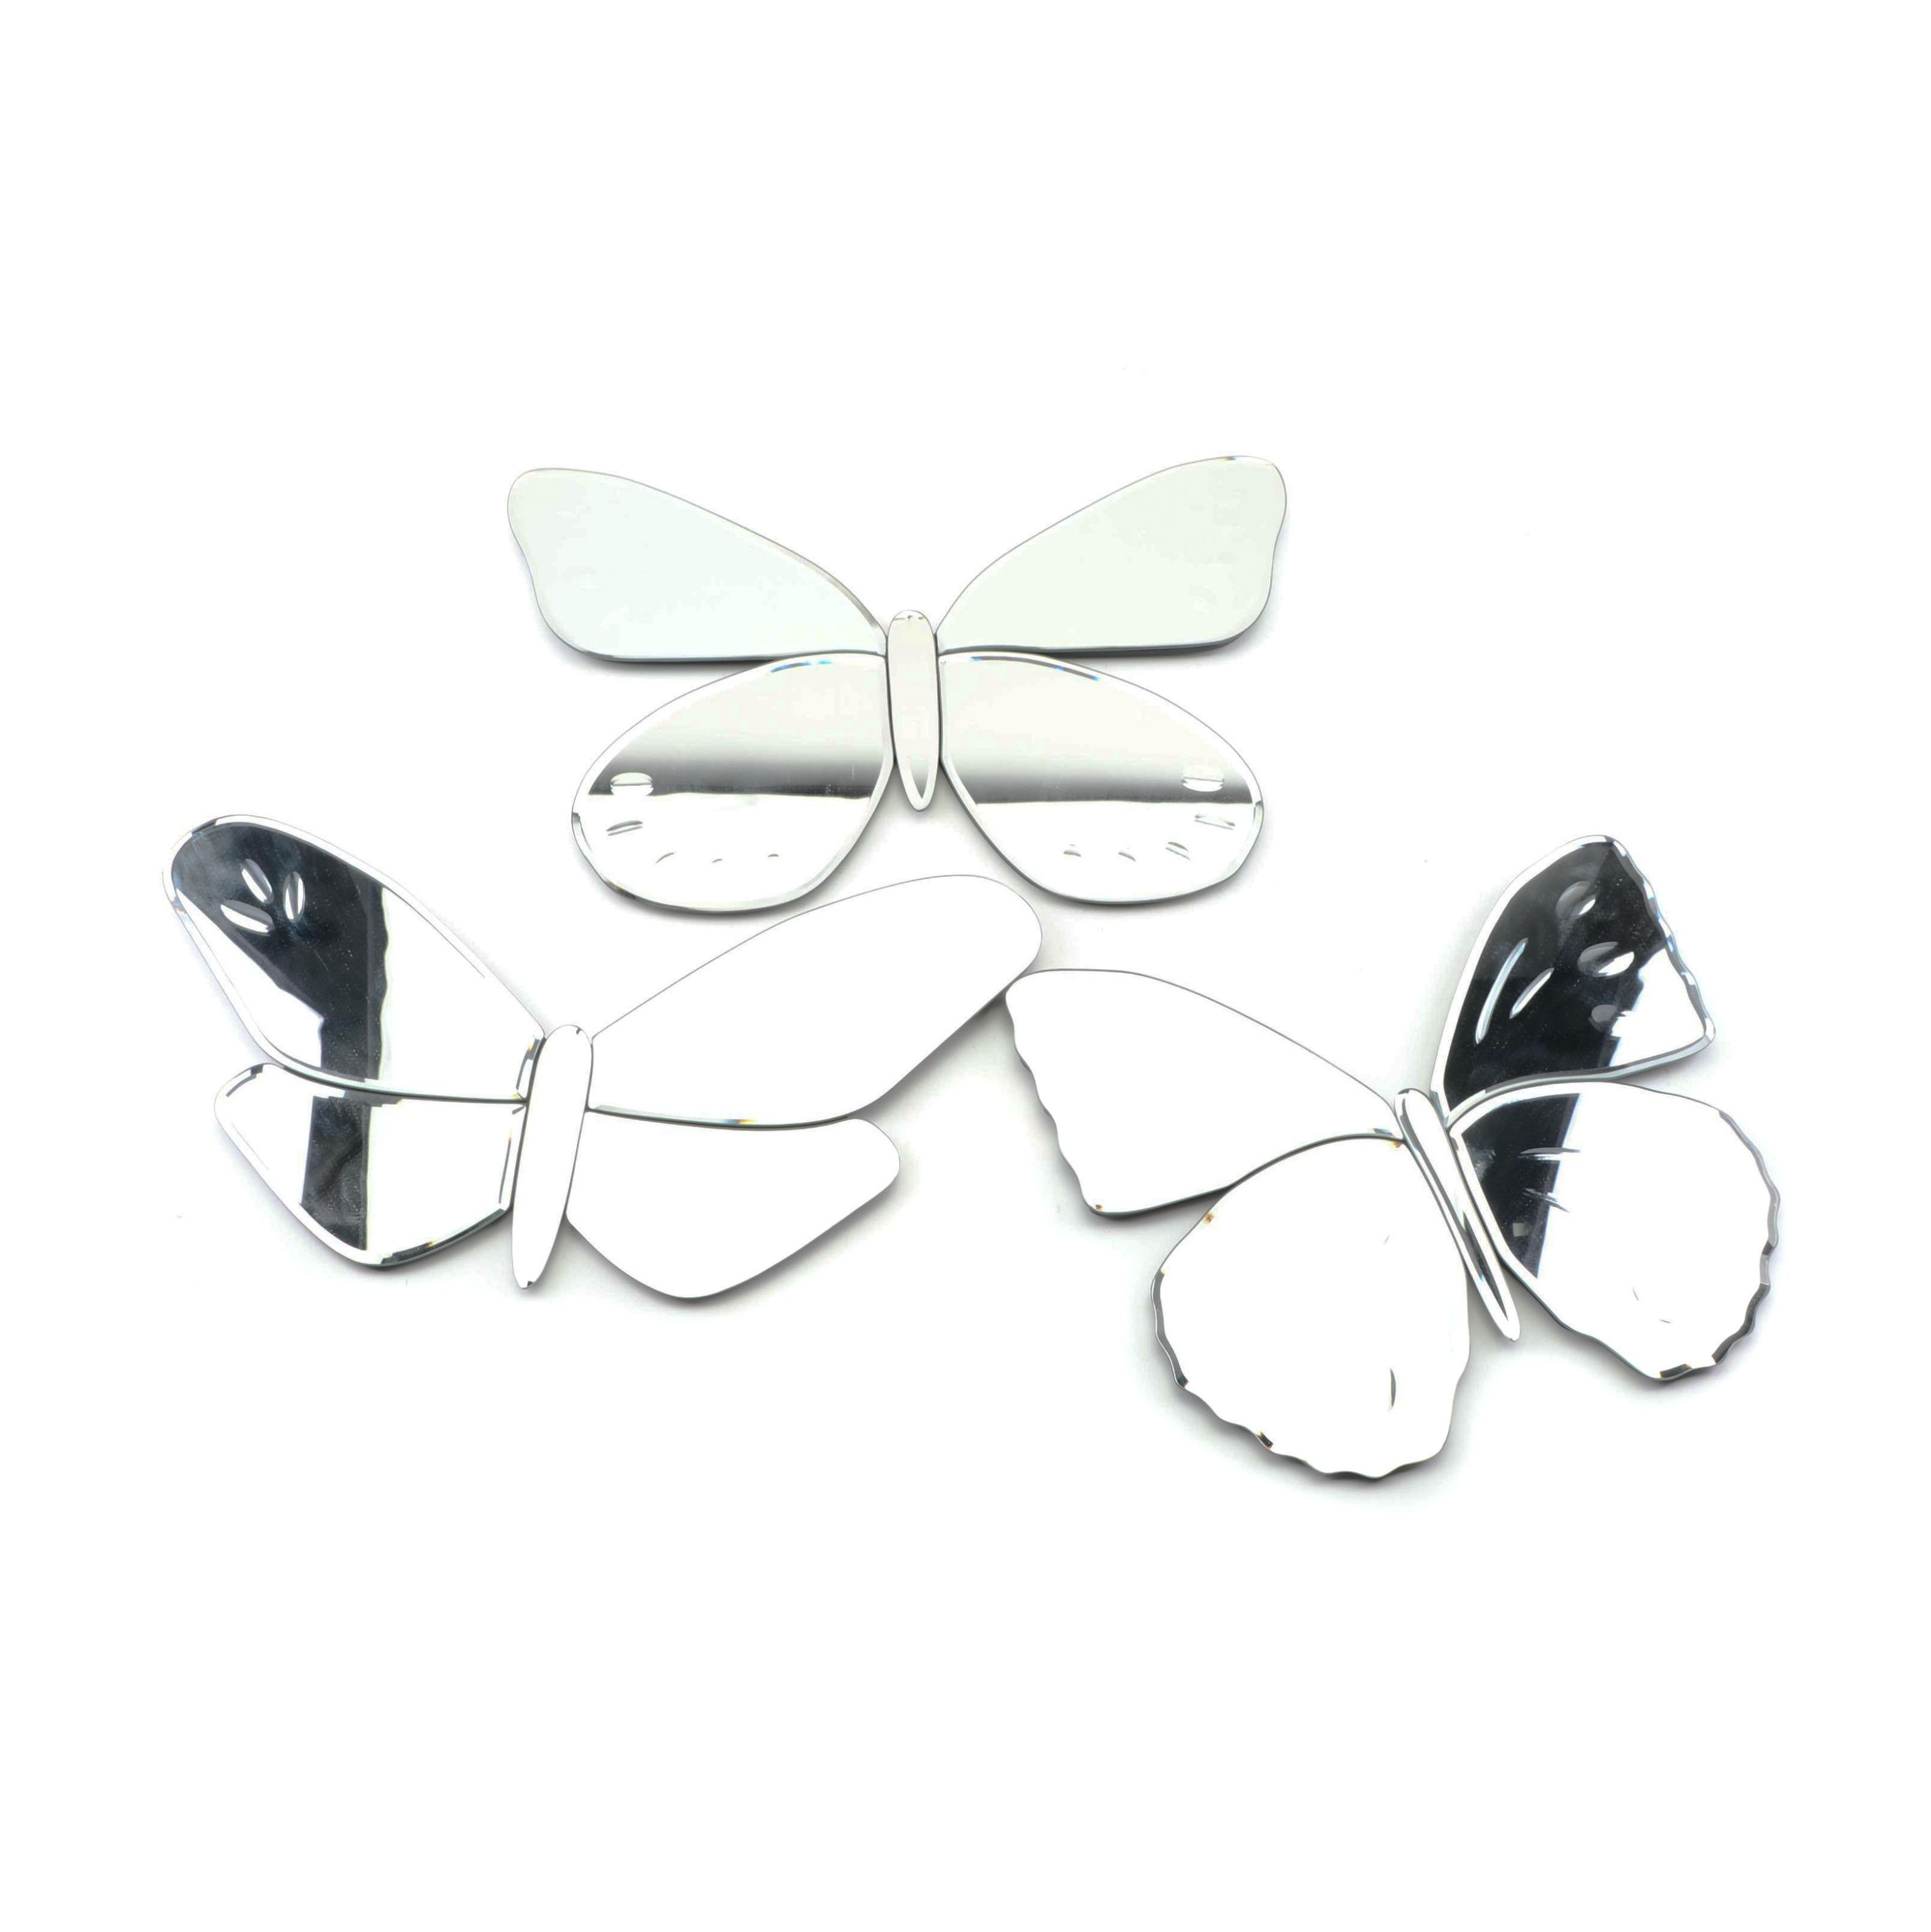 Pottery Barn Kids Butterfly Beveled Wall Mirrors